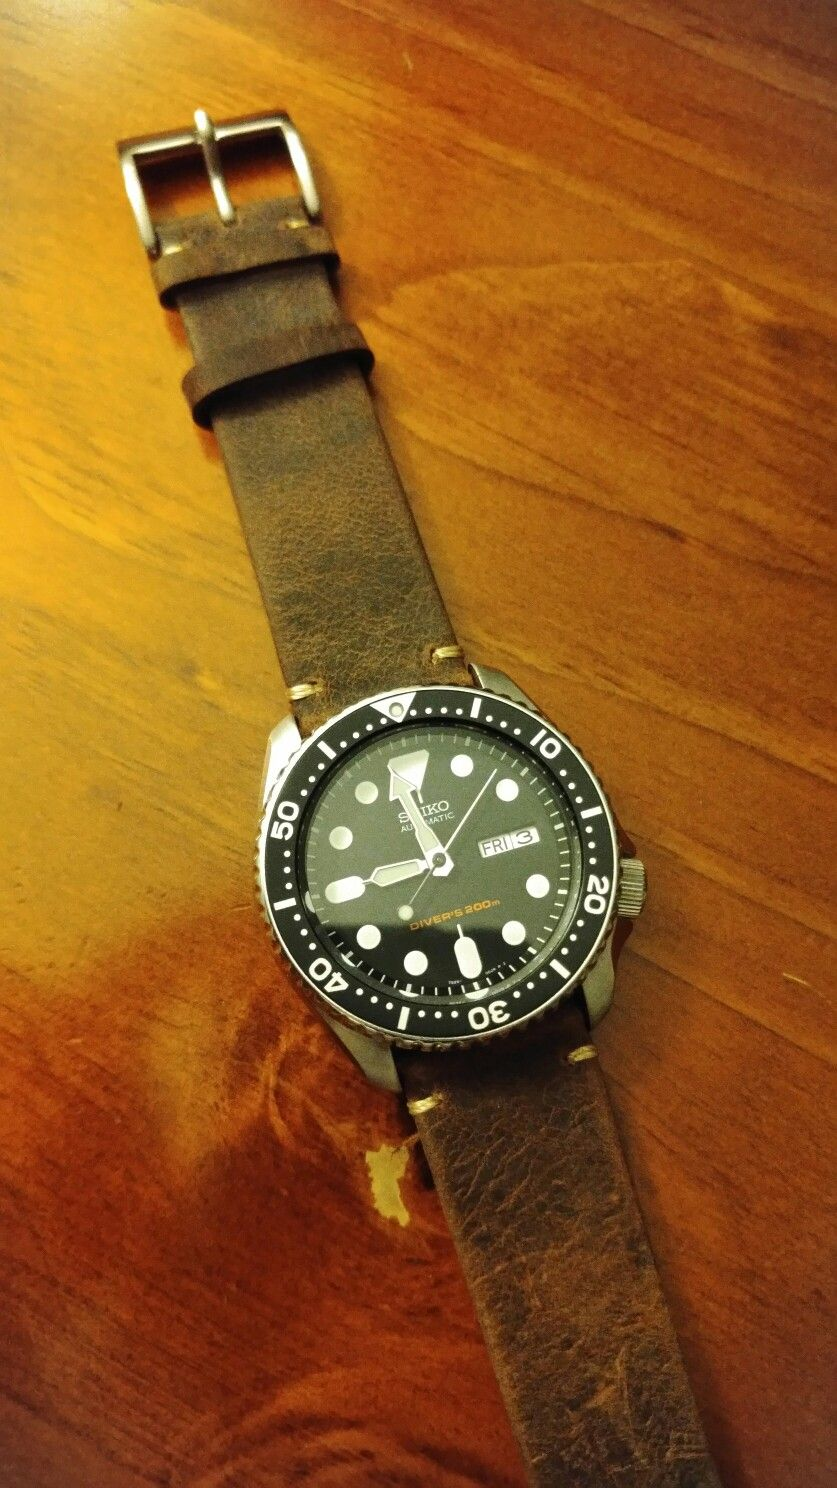 Seiko skx007 with custom brown leather straps ...